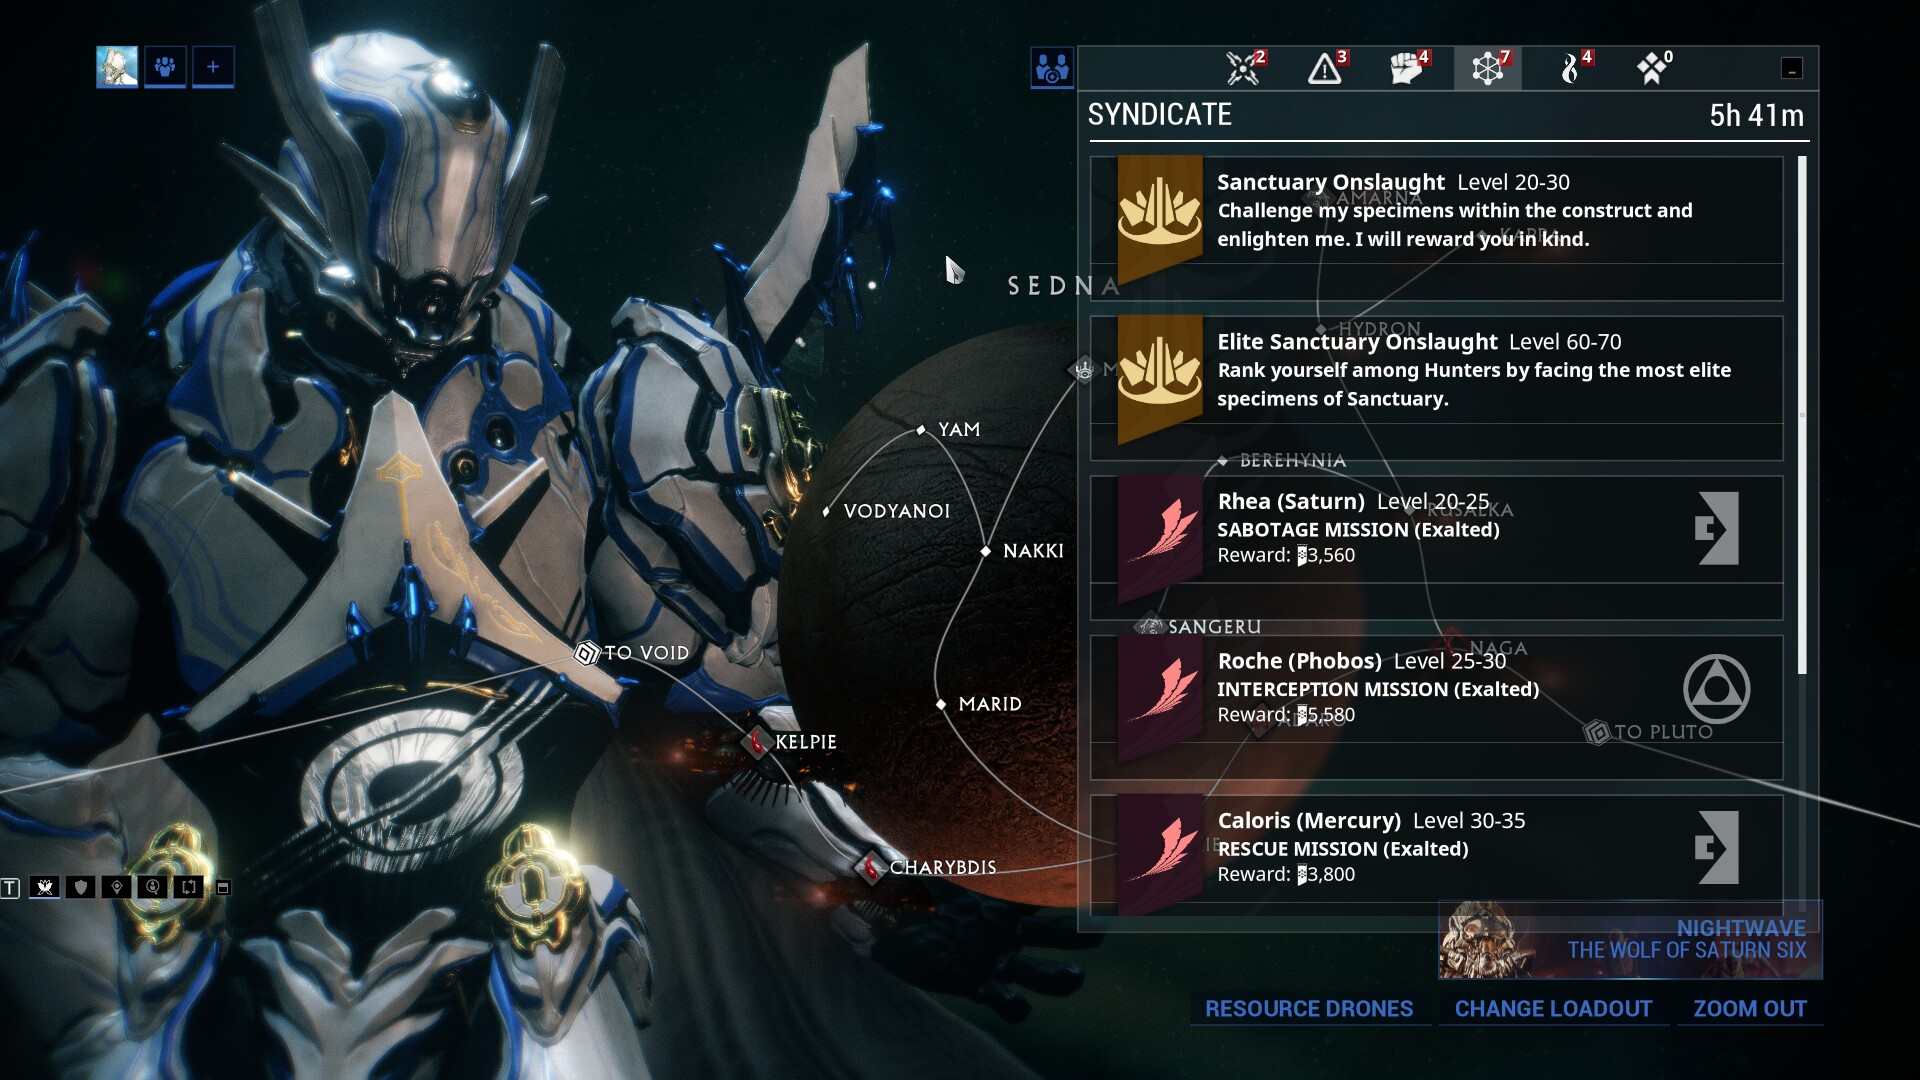 Warframe Eximus Farming Guide - How To Quickly Complete The